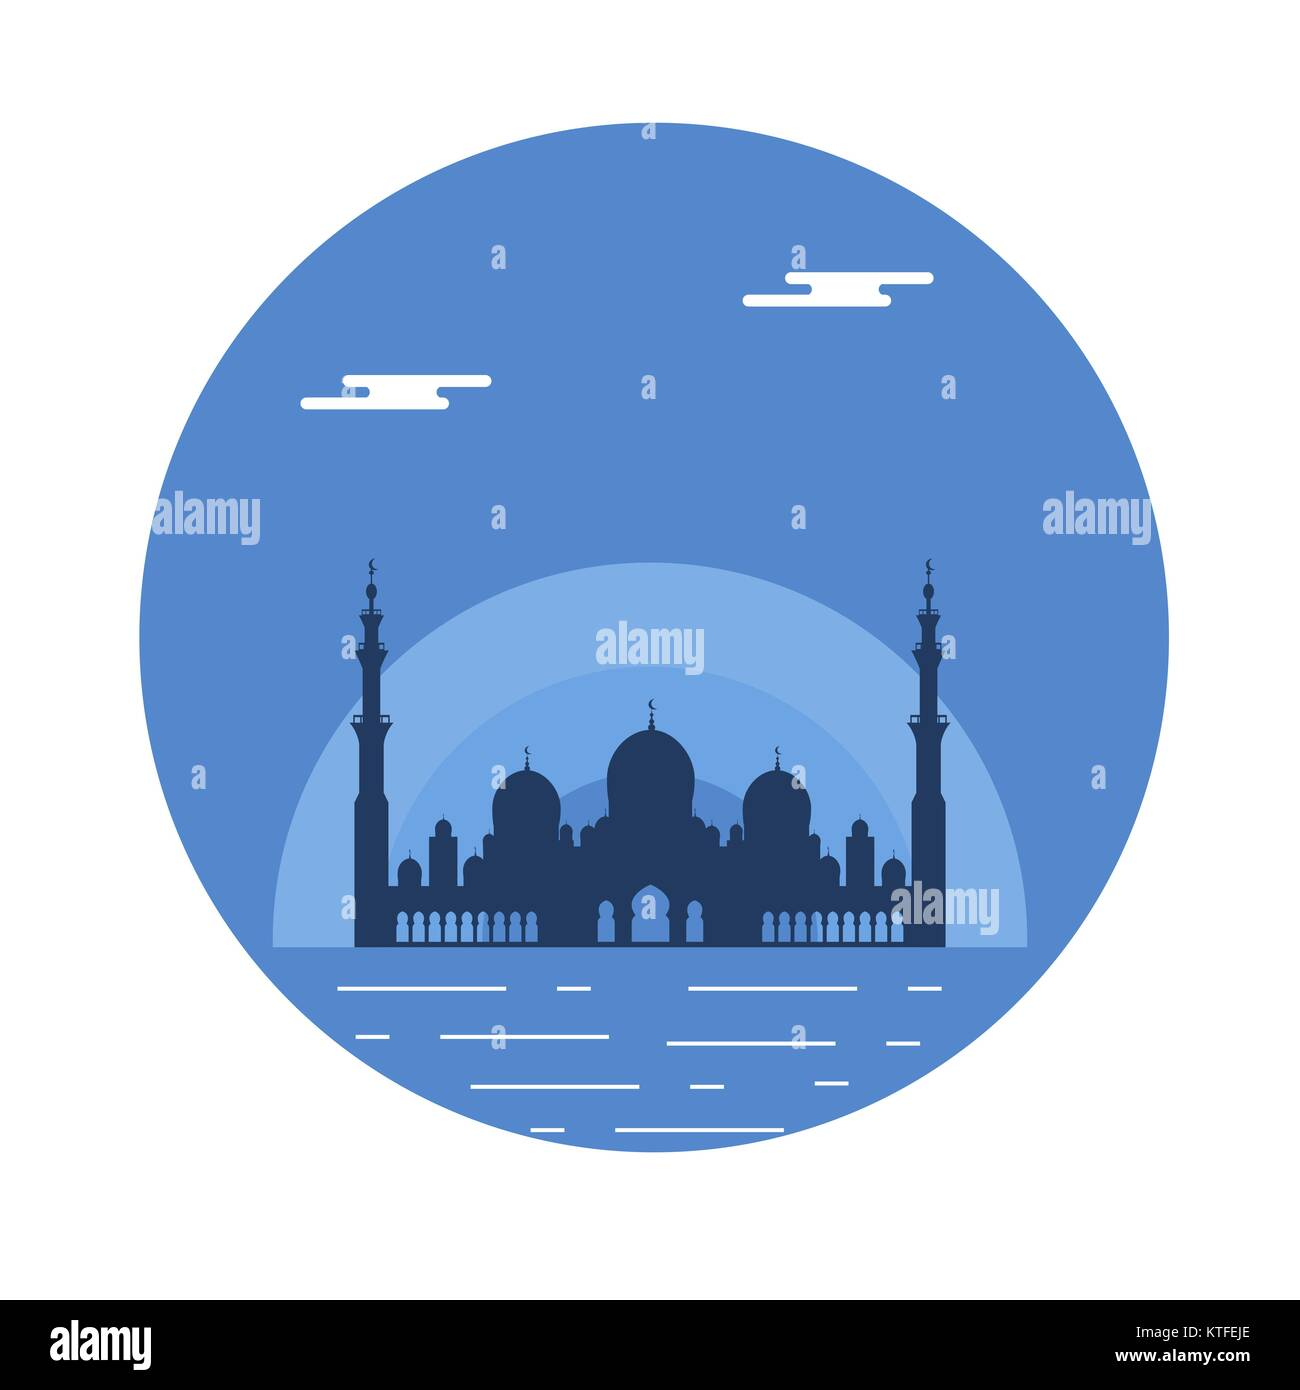 United Arab Emirates. Sheikh Zayed Mosque silhouette. Abu dhabi. Design for banner, poster or print. - Stock Image